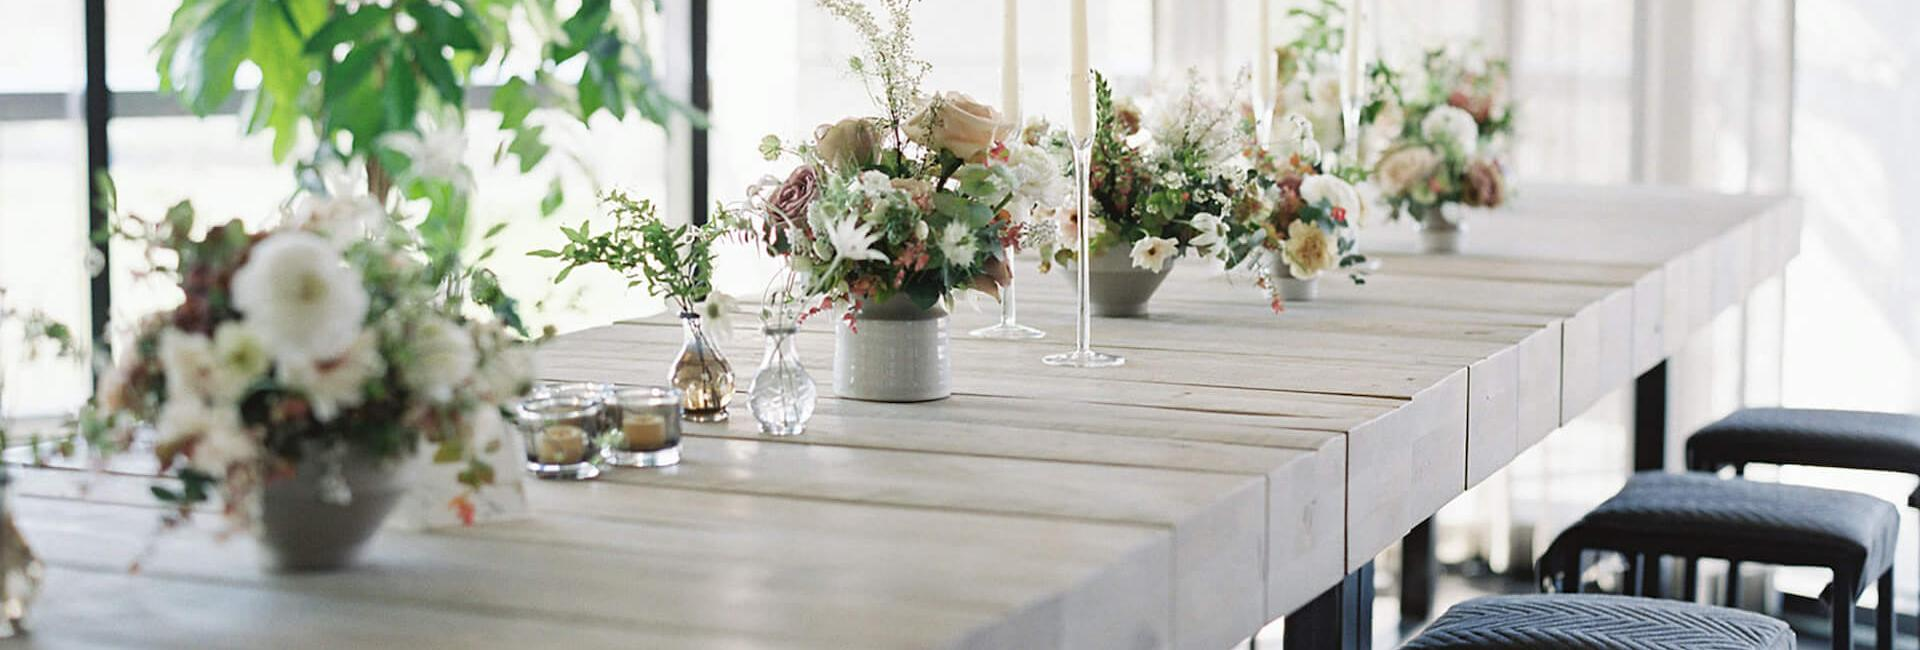 A row of tables decorated with wedding florals and tealights.